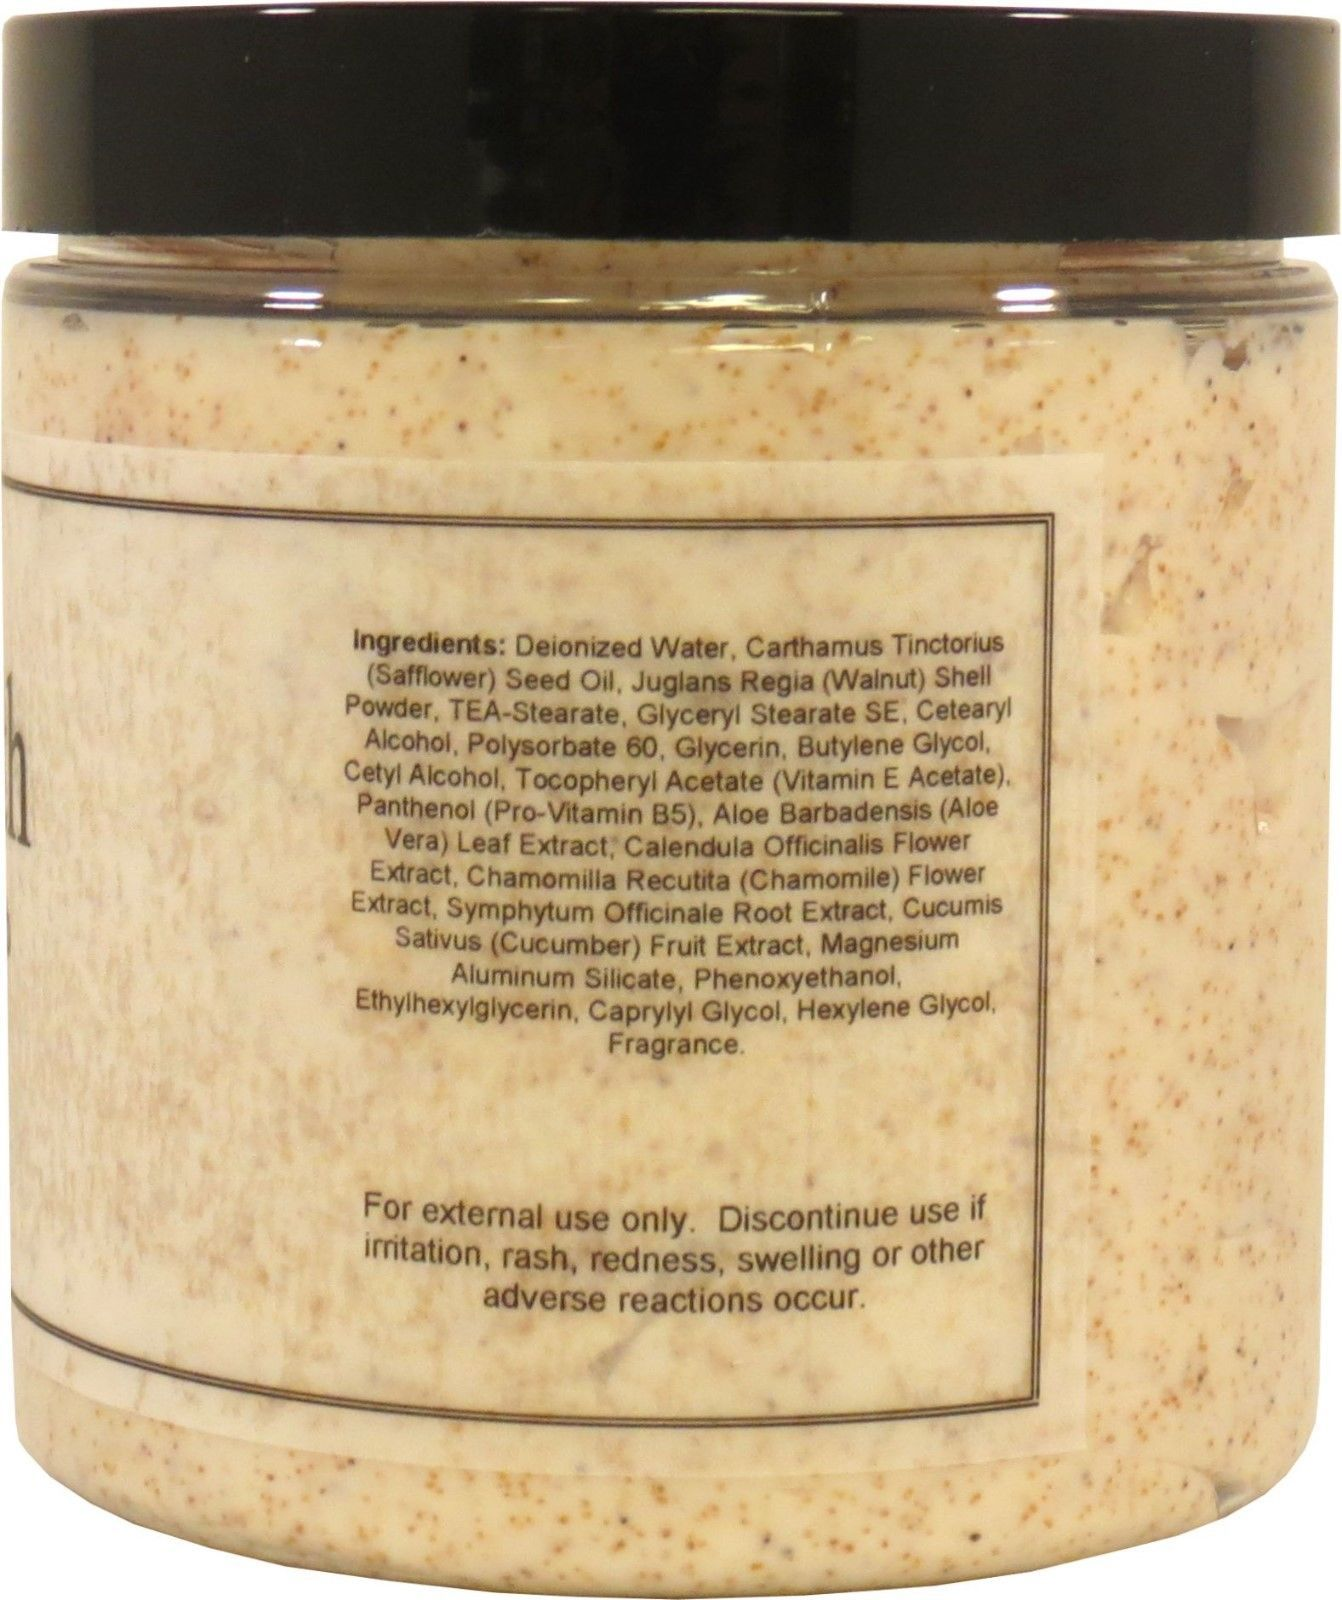 Summer Fling Walnut Body Scrub